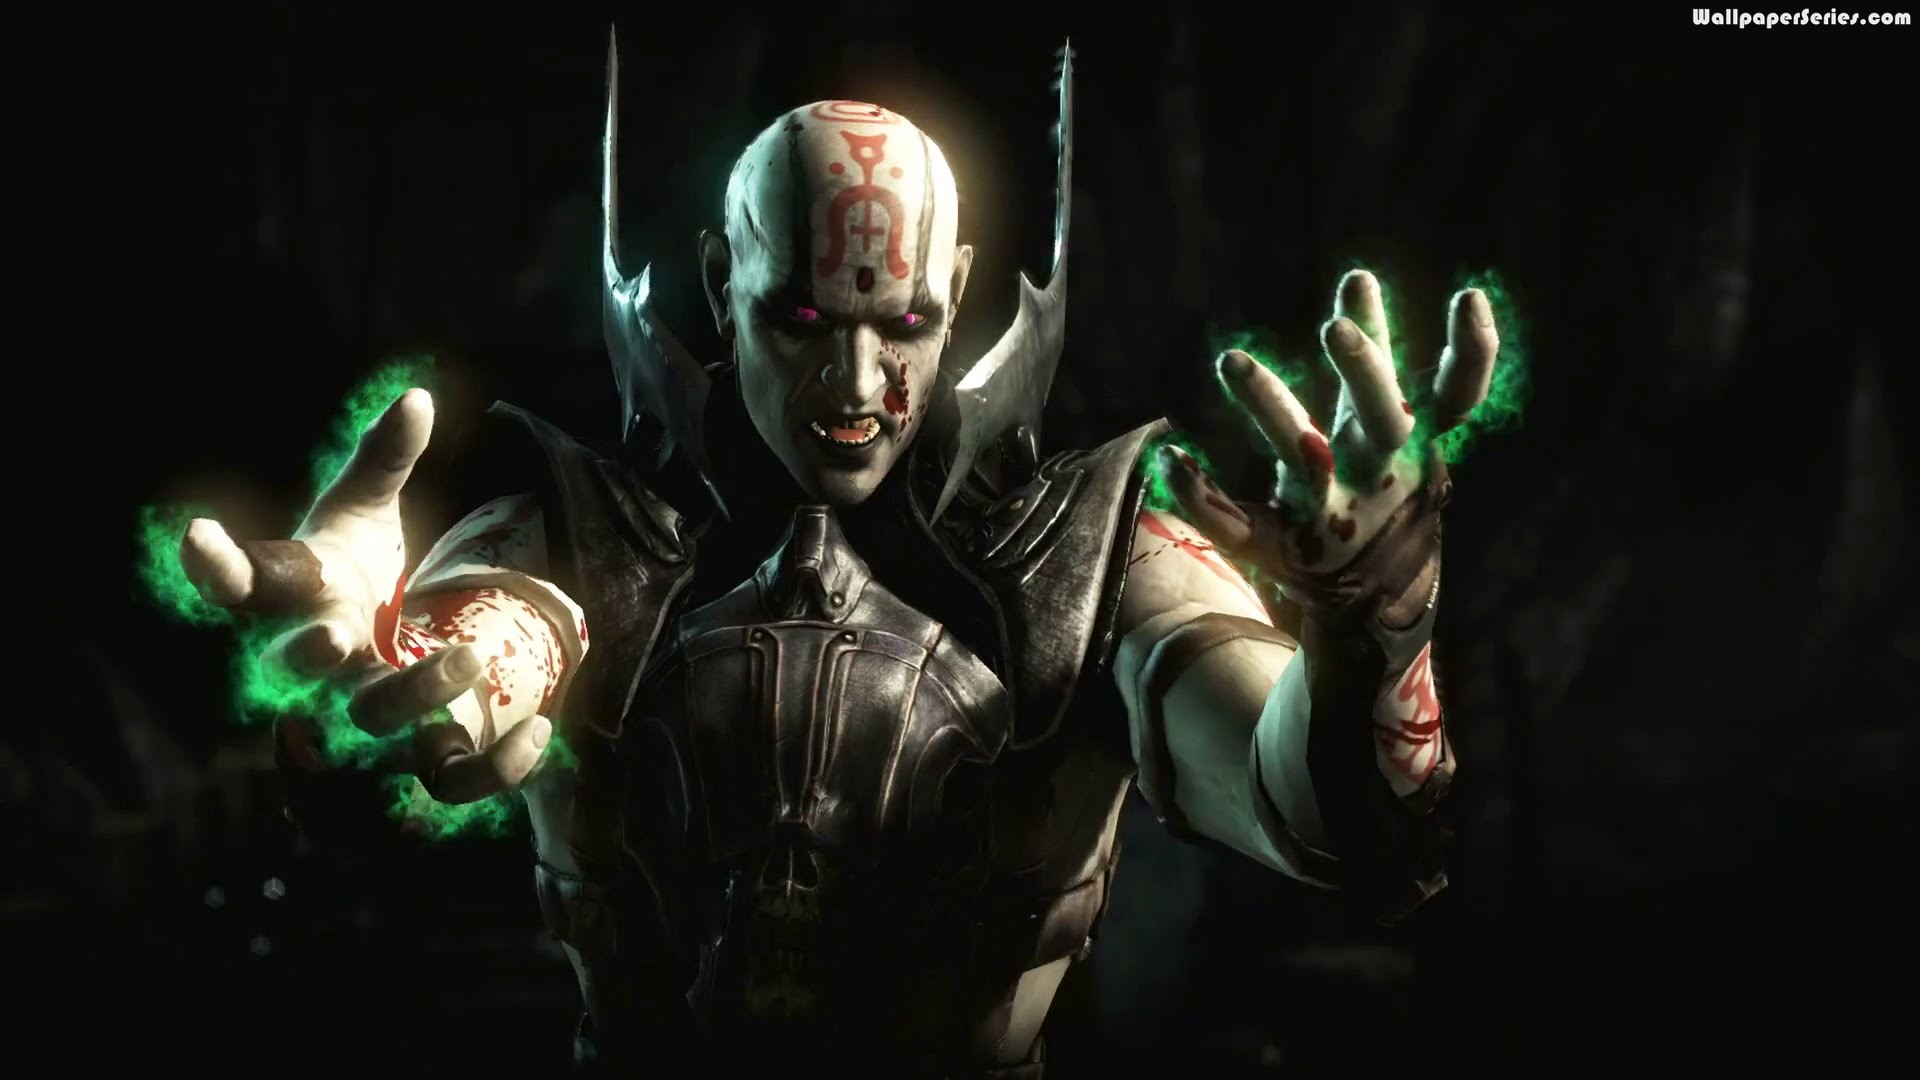 Mortal Kombat X HD Wallpapers for desktop download 1920x1080